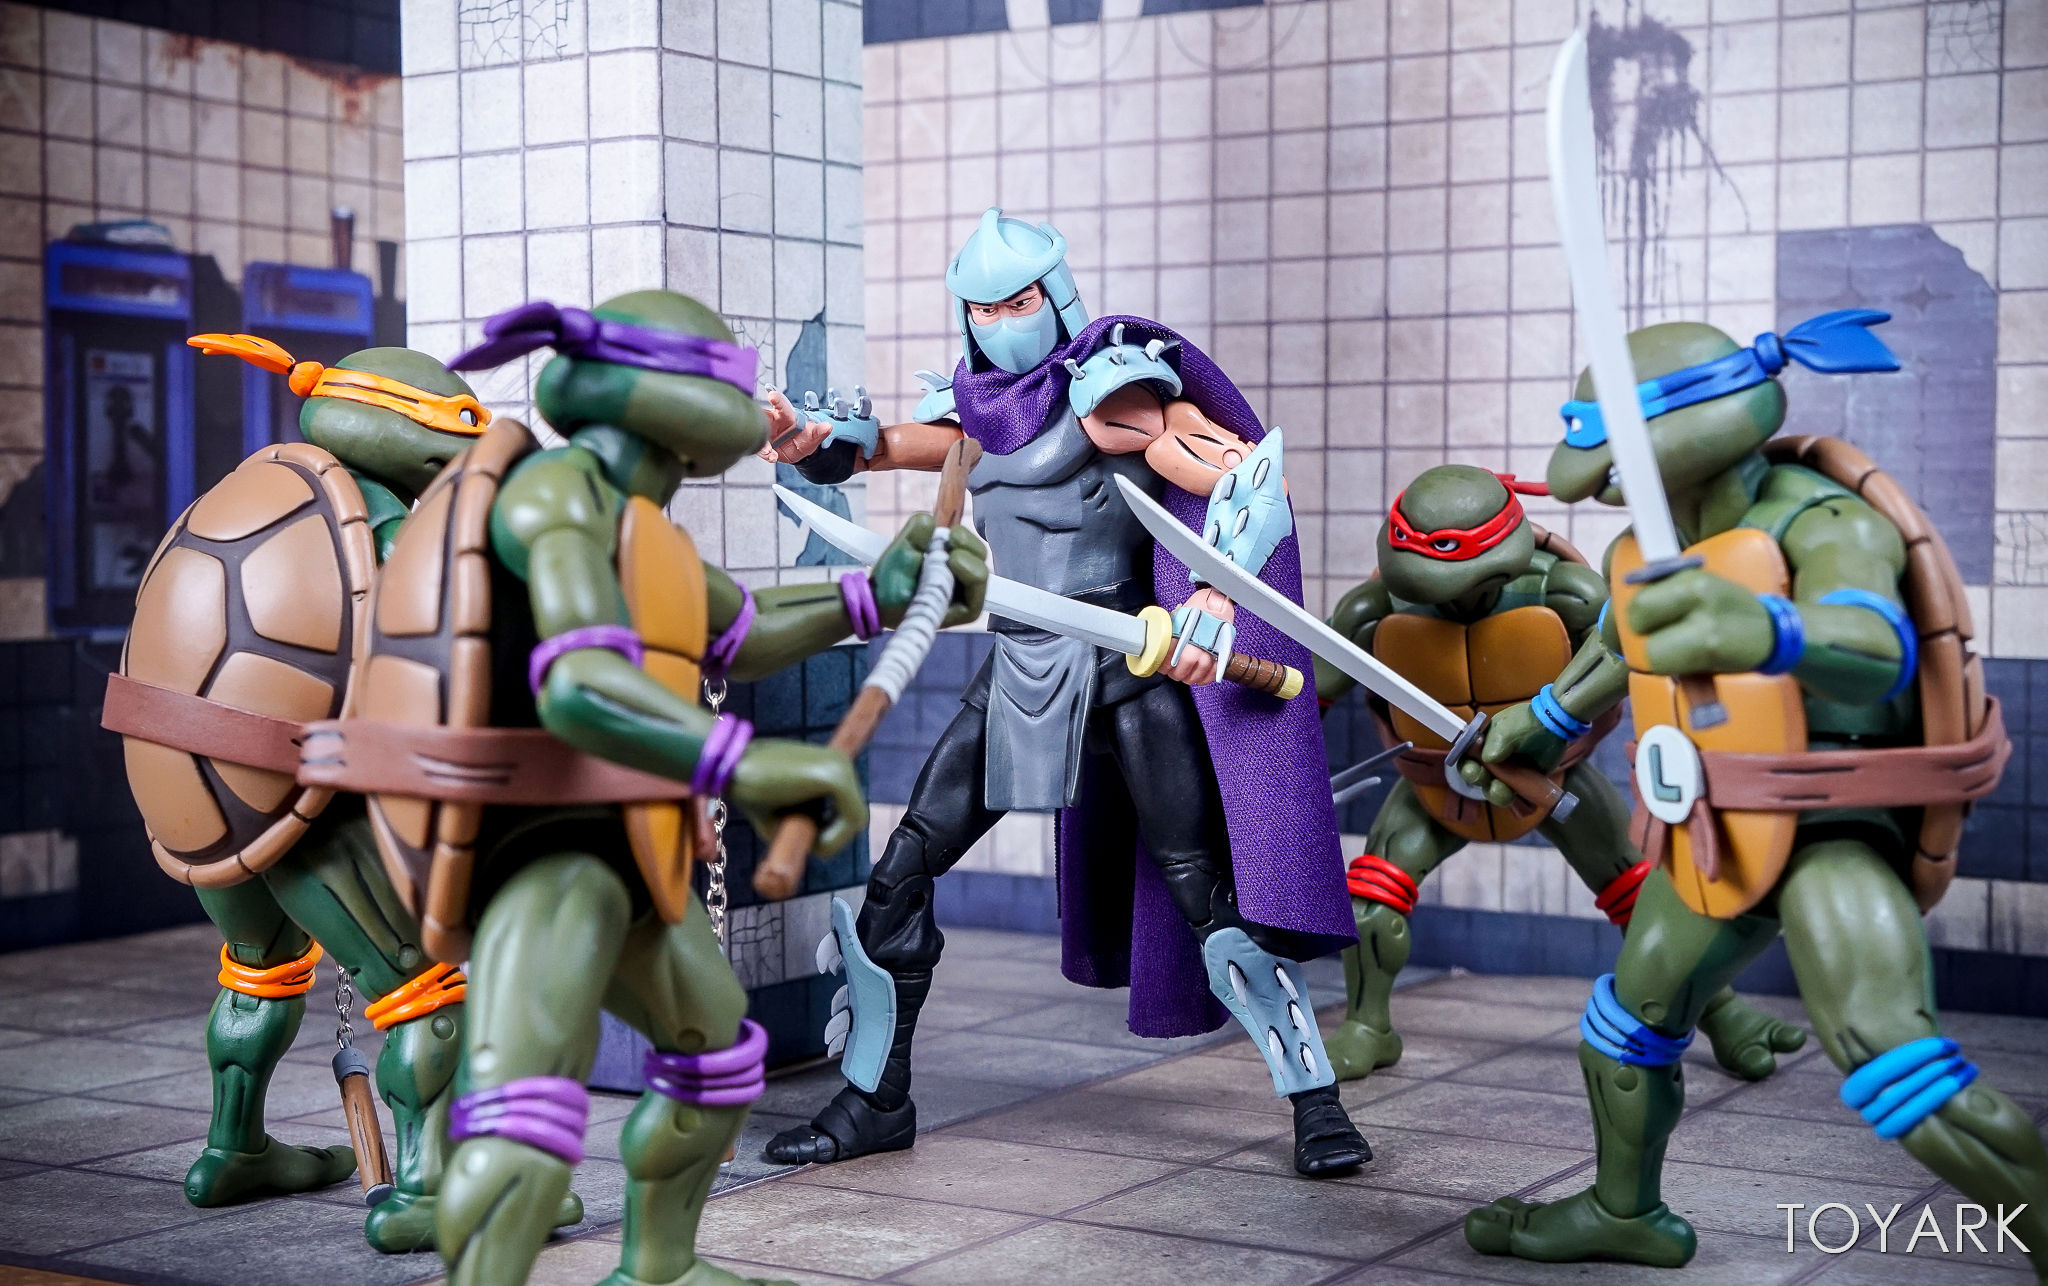 http://news.toyark.com/wp-content/uploads/sites/4/2017/07/NECA-SDCC-2017-Toon-TMNT-081.jpg